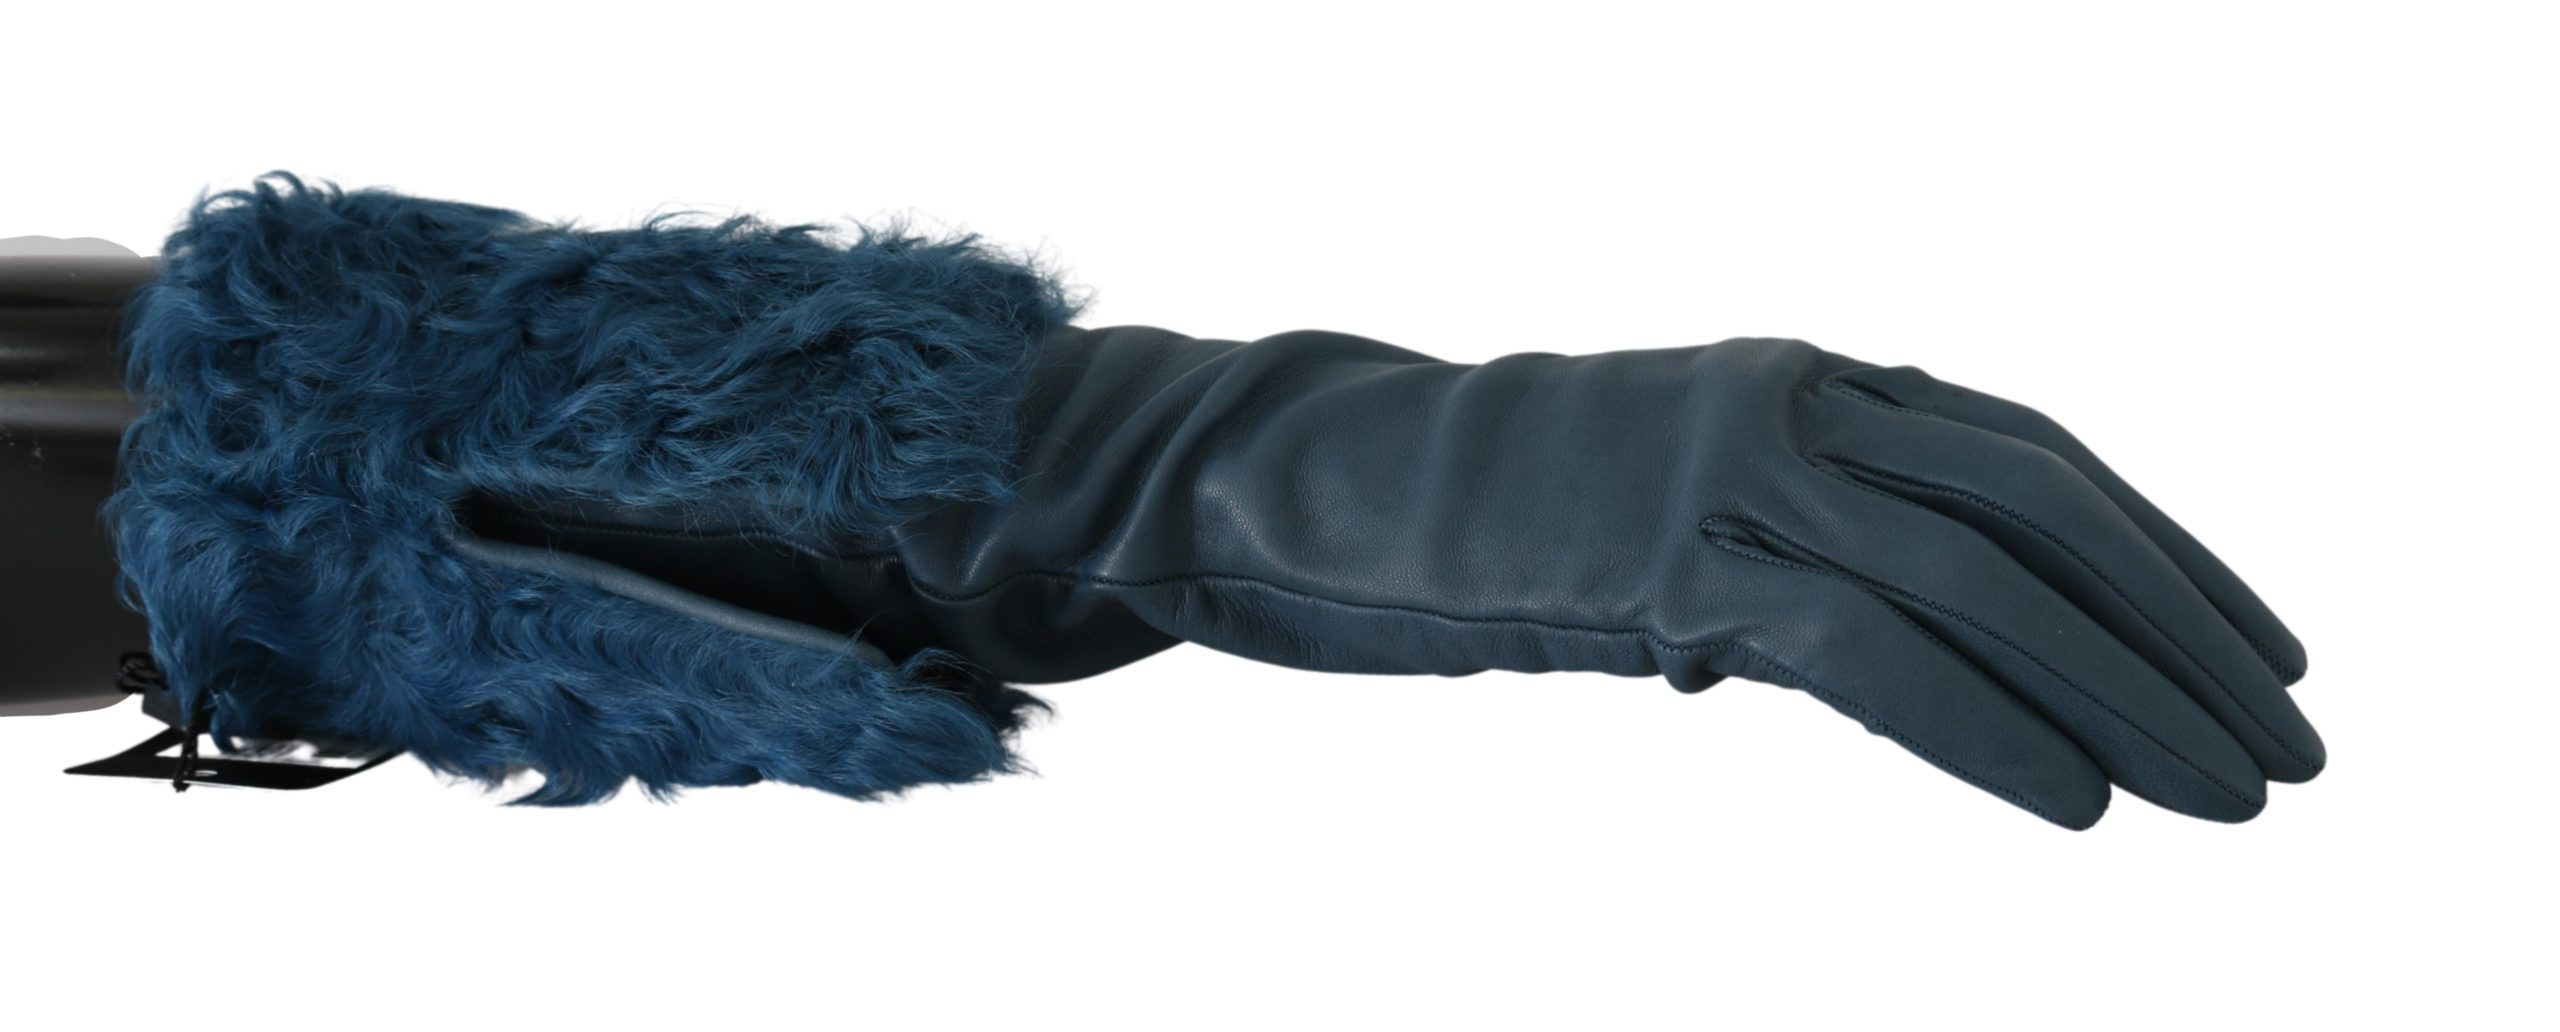 Dolce & Gabbana Women's Mid Arm Leather Shearling Fur Gloves Blue LB1010 - 7 S